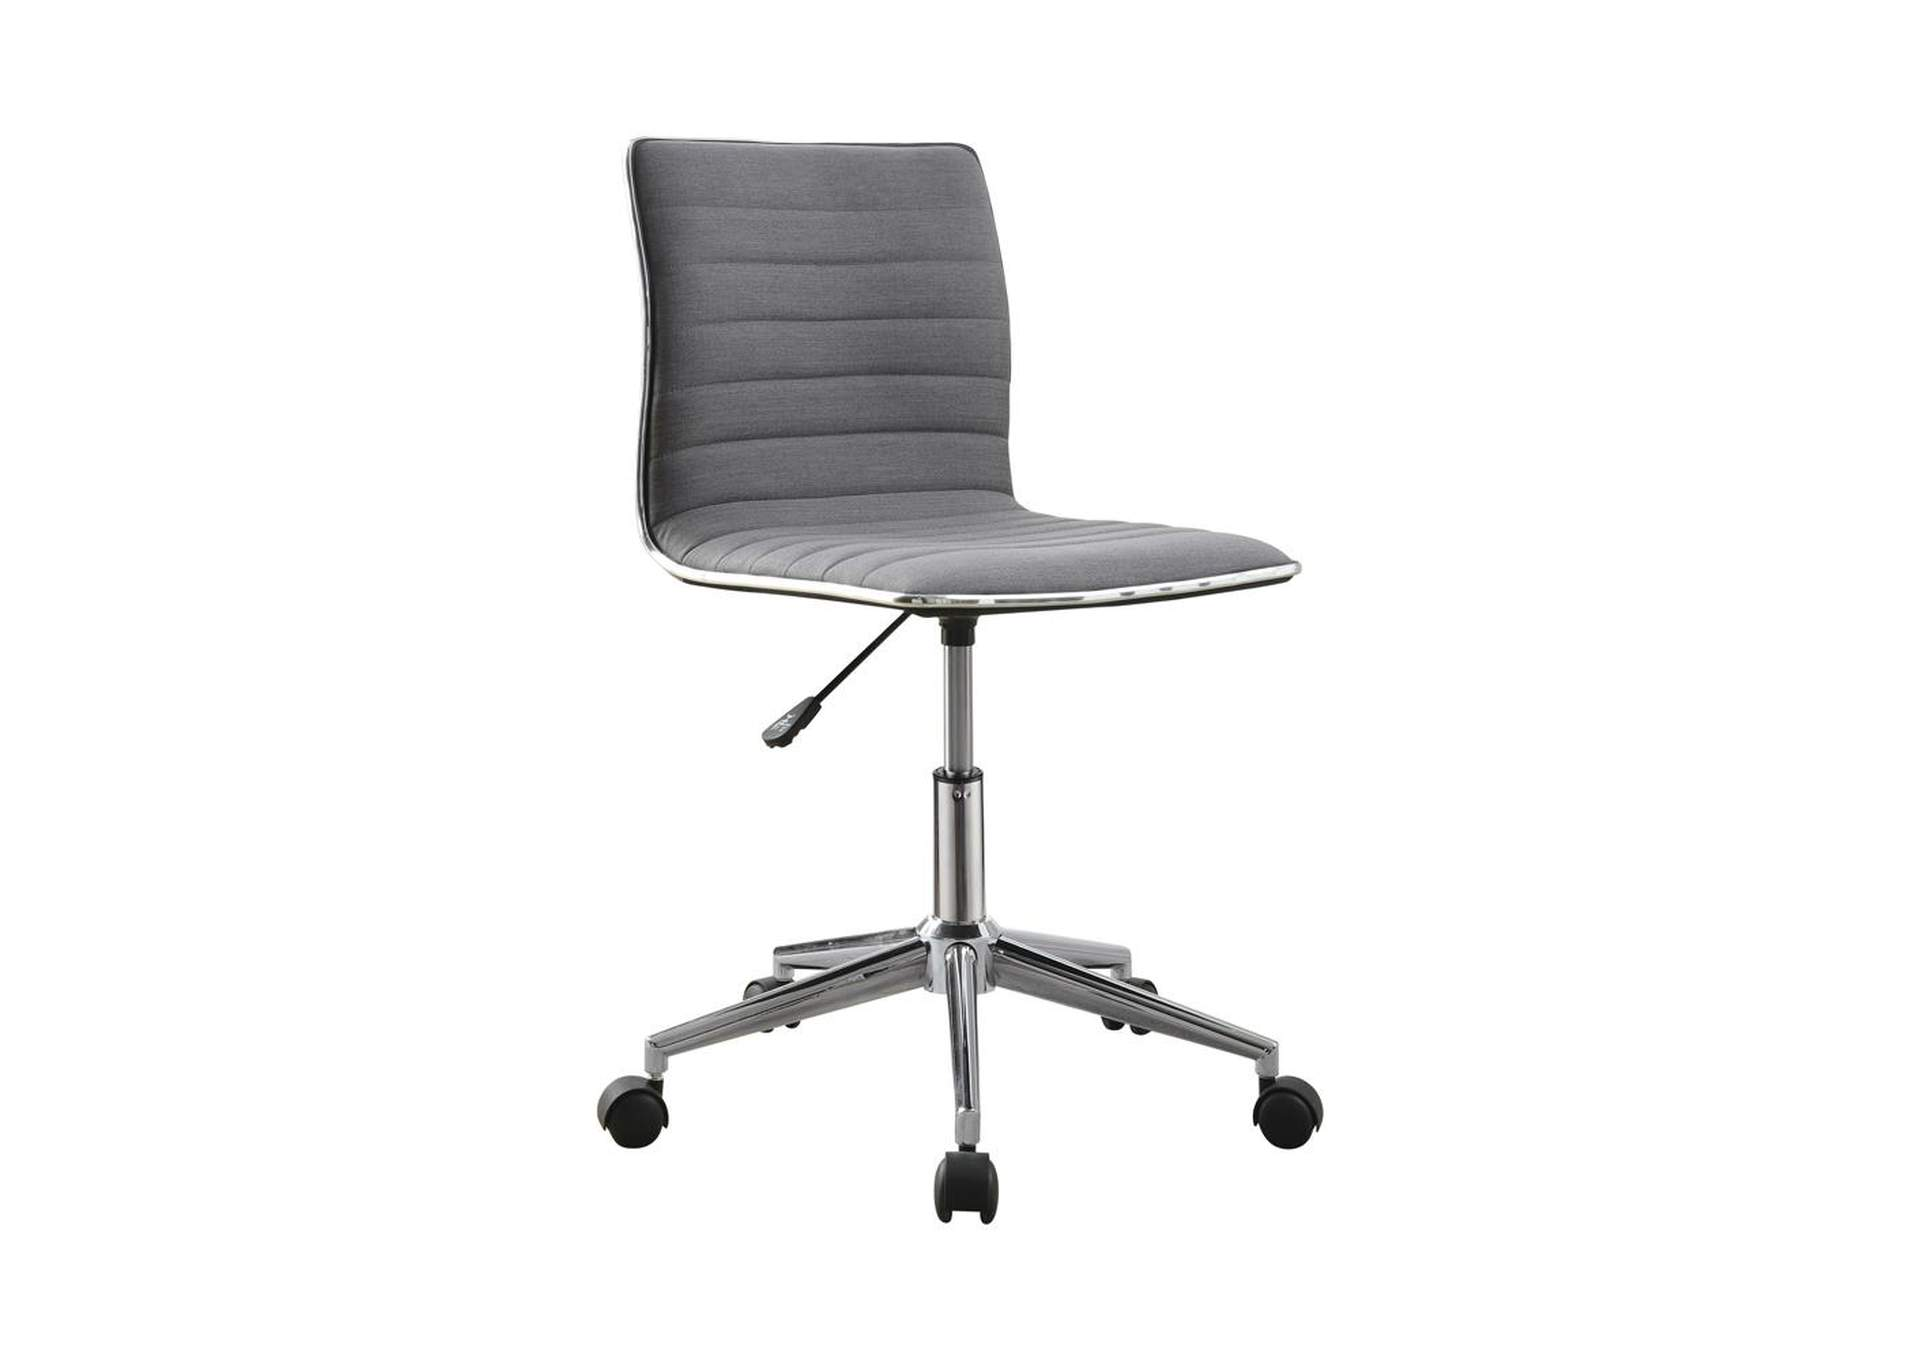 Mid Gray Modern Grey and Chrome Home Office Chair,Coaster Furniture